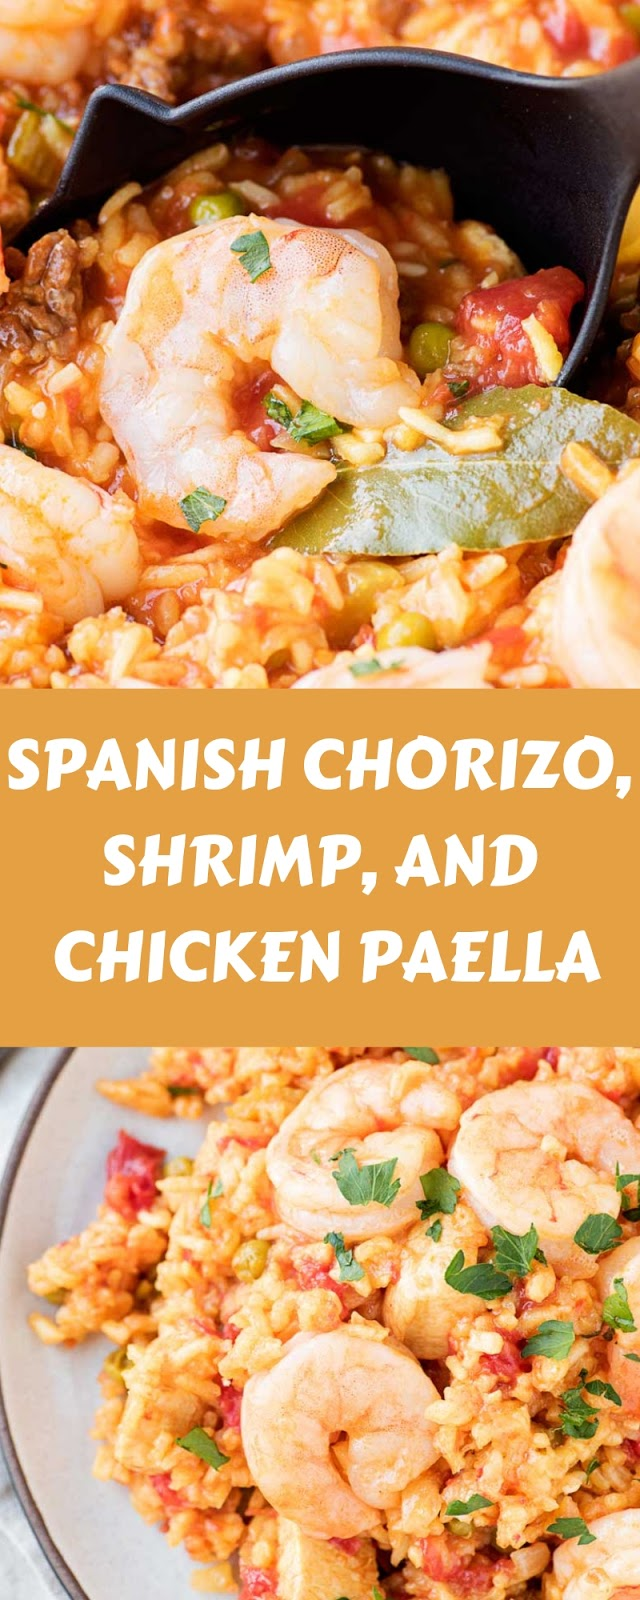 SPANISH CHORIZO, SHRIMP, AND CHICKEN PAELLA